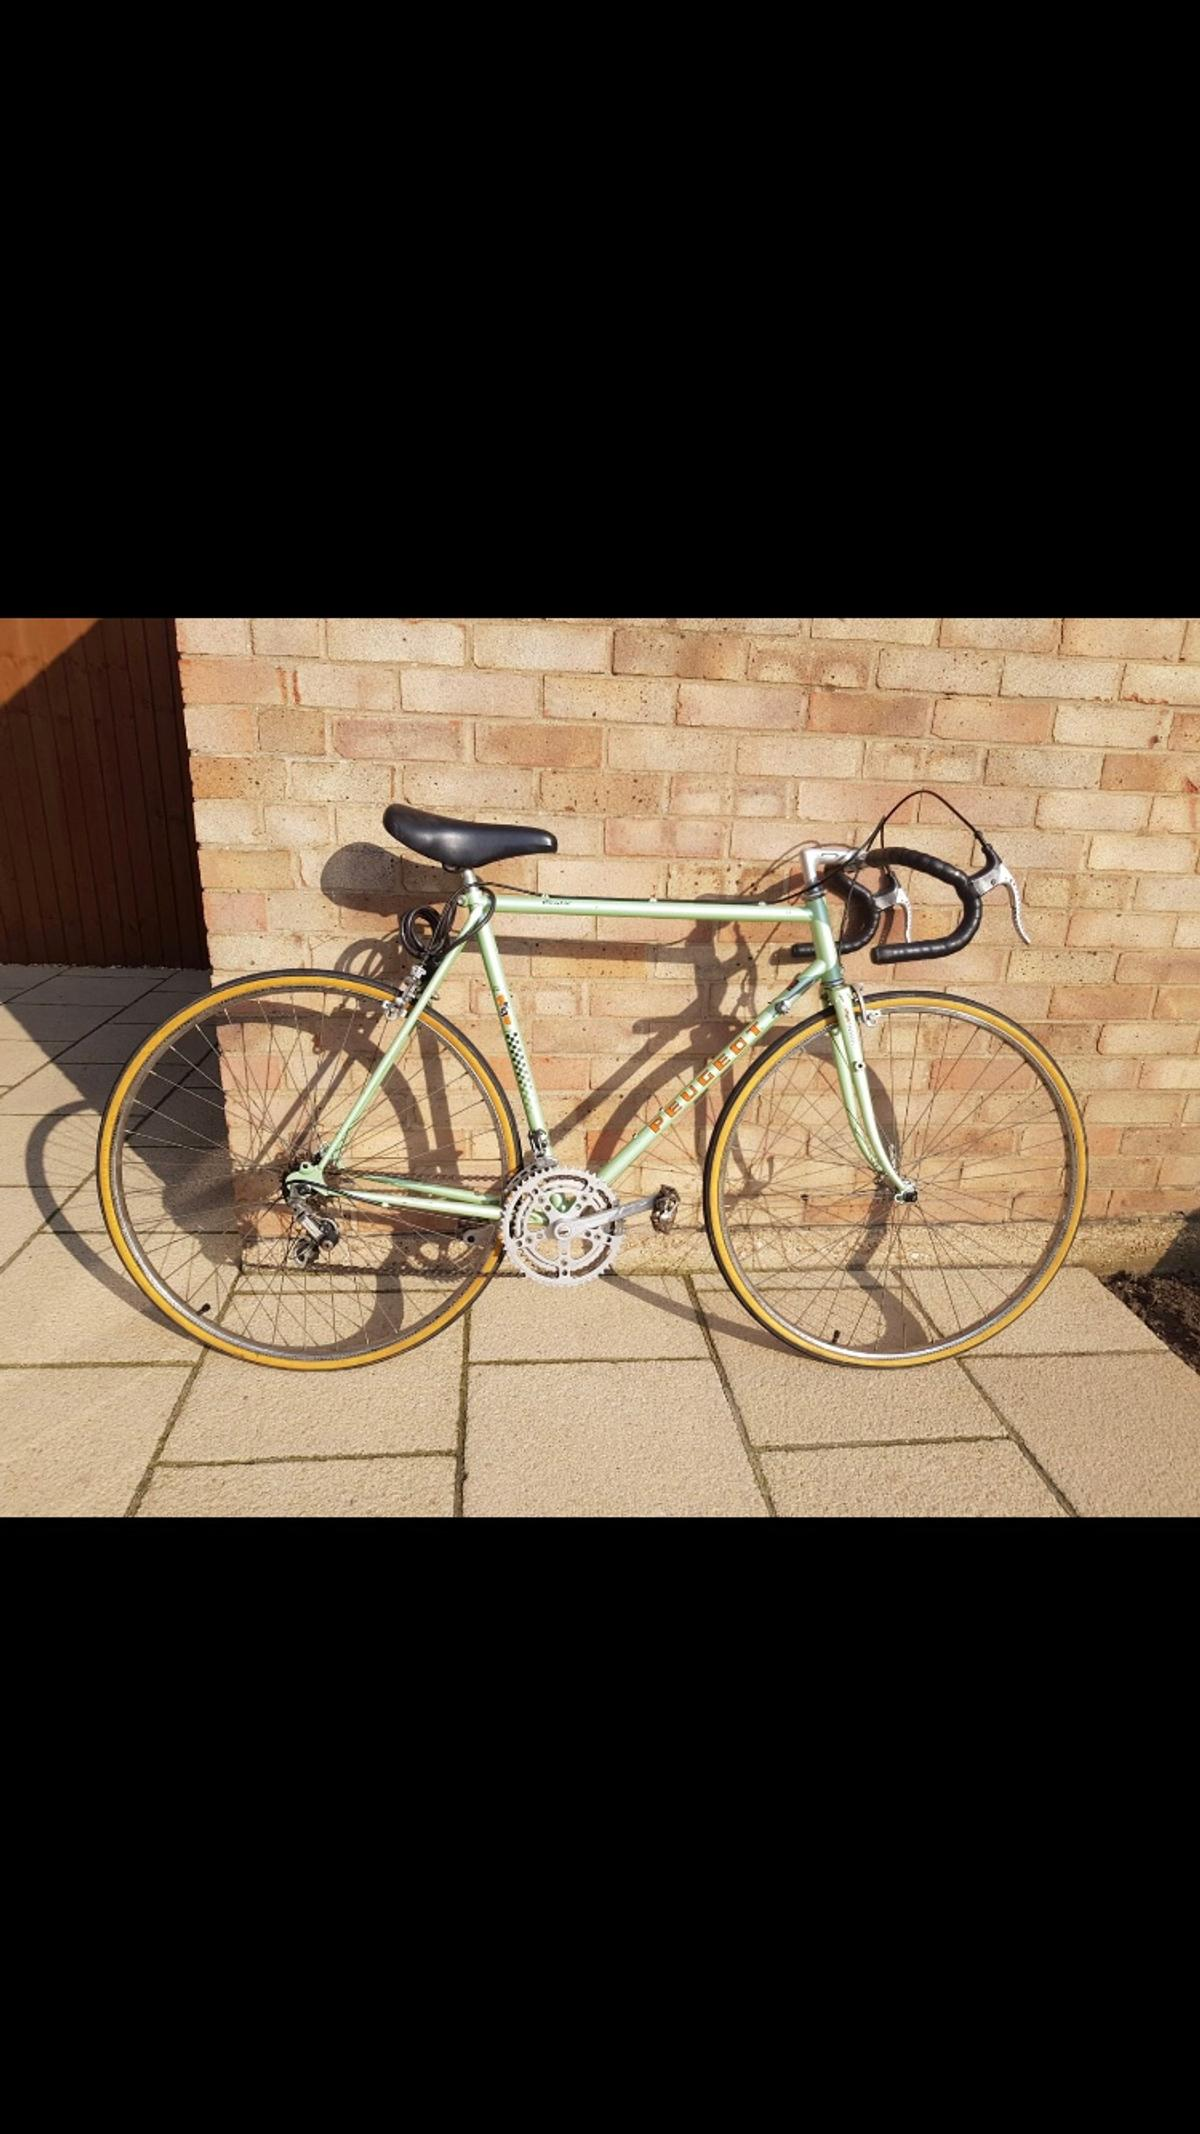 Vintage Racing Bike - Peugeot 103 in Great Denham for